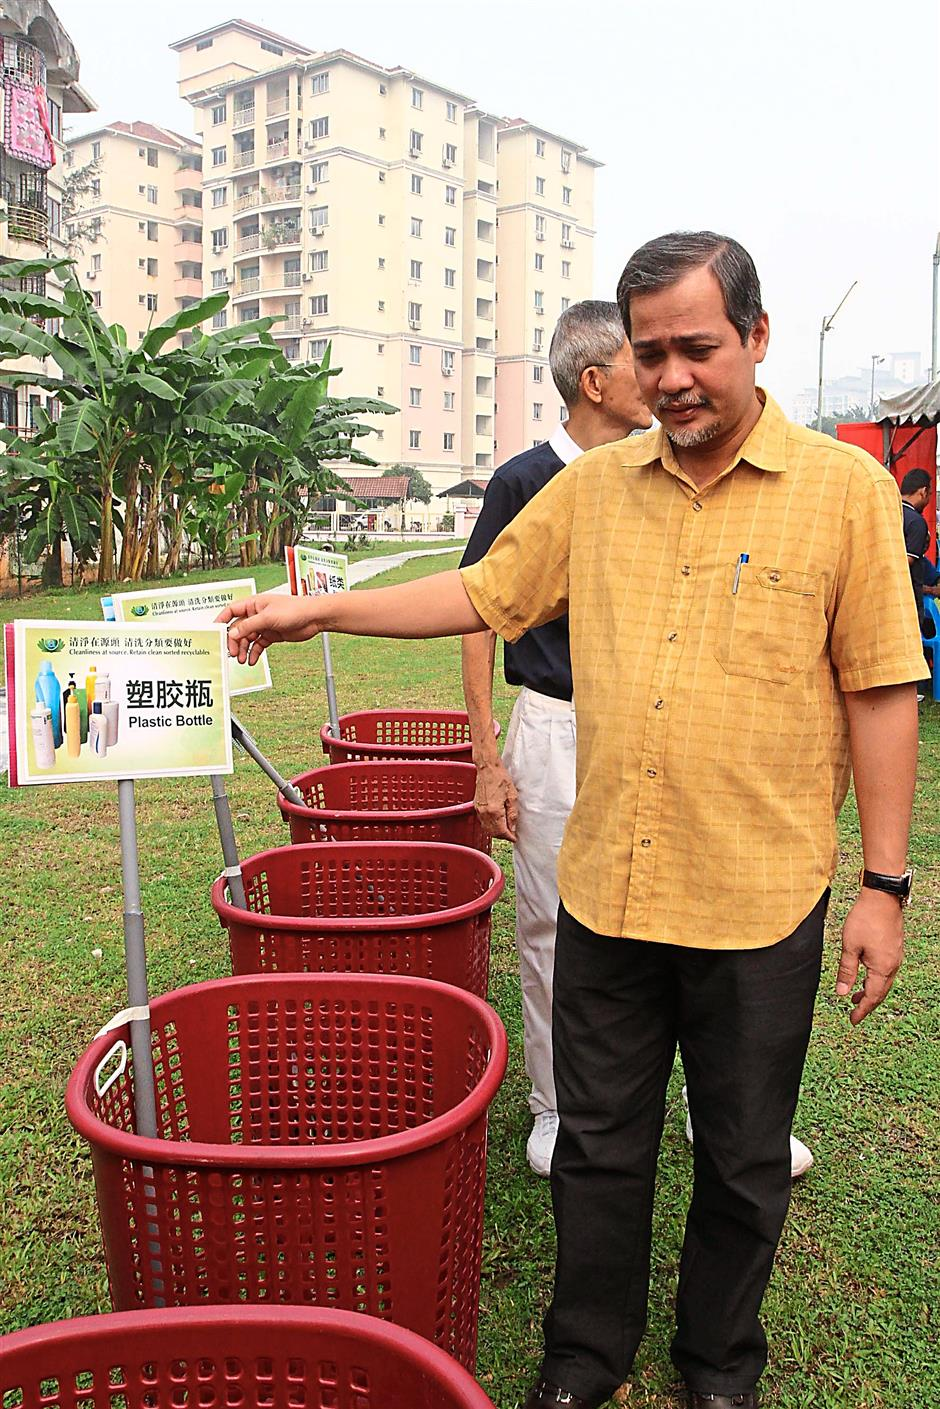 Abdul Hamid demonstrating how recyclable waste should be separated and thrown into the correct bins.